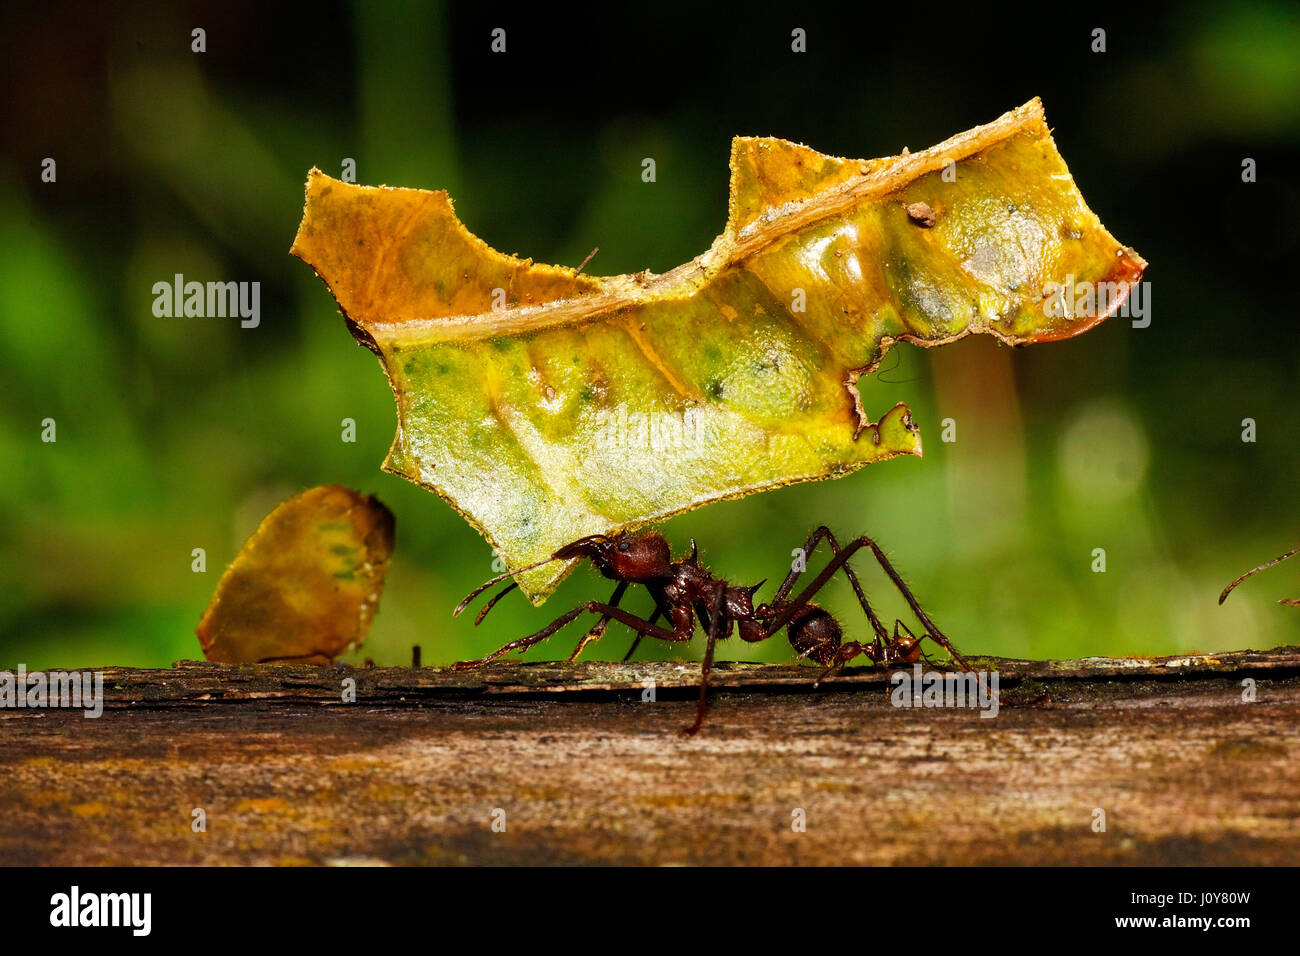 Leafcutter ant - Stock Image